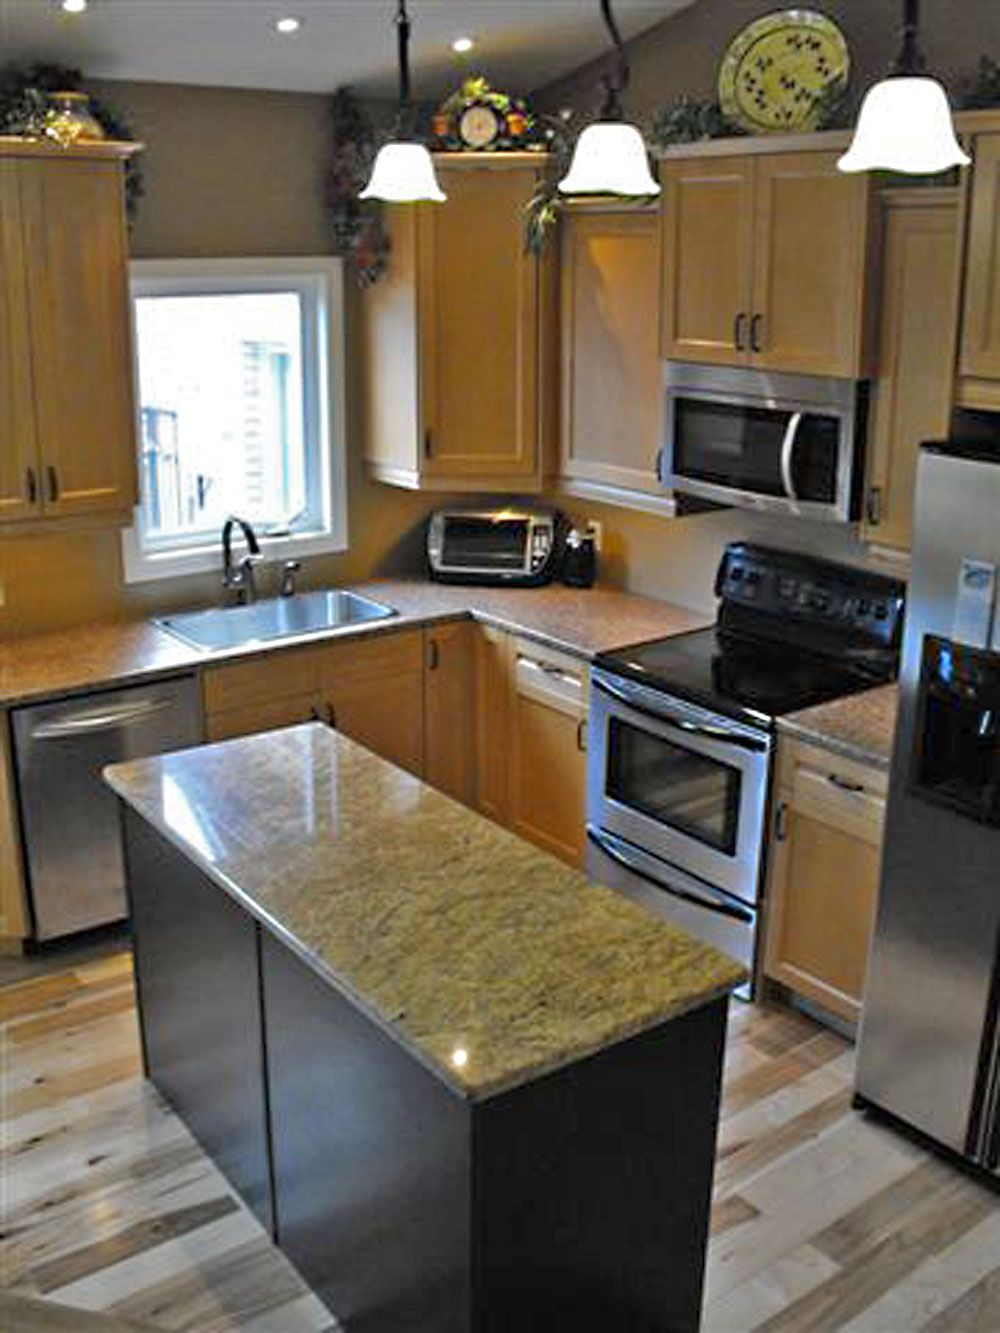 Kitchen Remodeling Chicago Concept Raised Ranch Before And After Raised Ranch Kitchen Remodel Ideas .